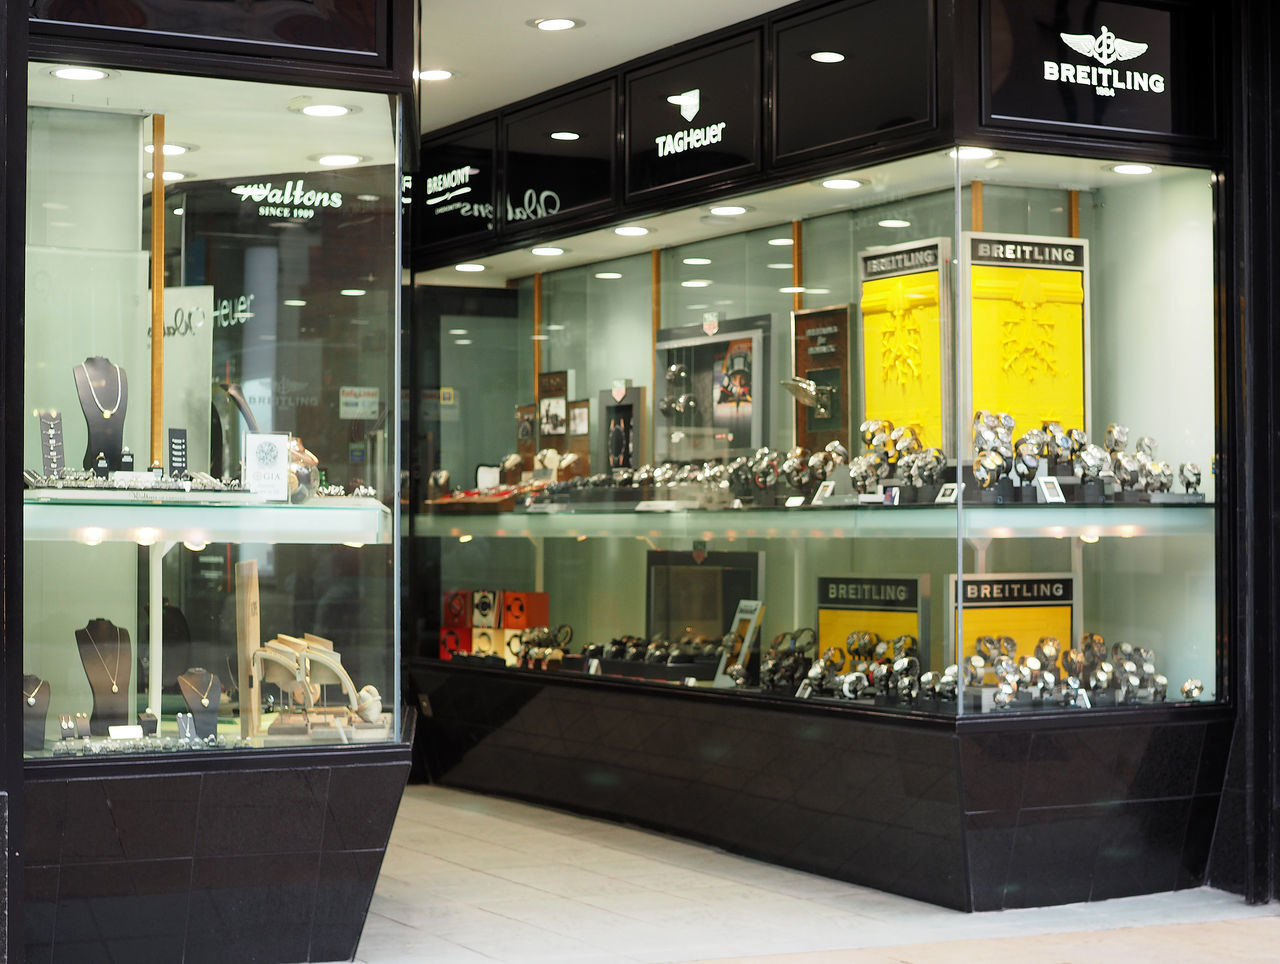 City of Chester Brietling Eastgate Street Jewellers Shop A Taste Of Chester, UK Selling Watches Brietling Watches